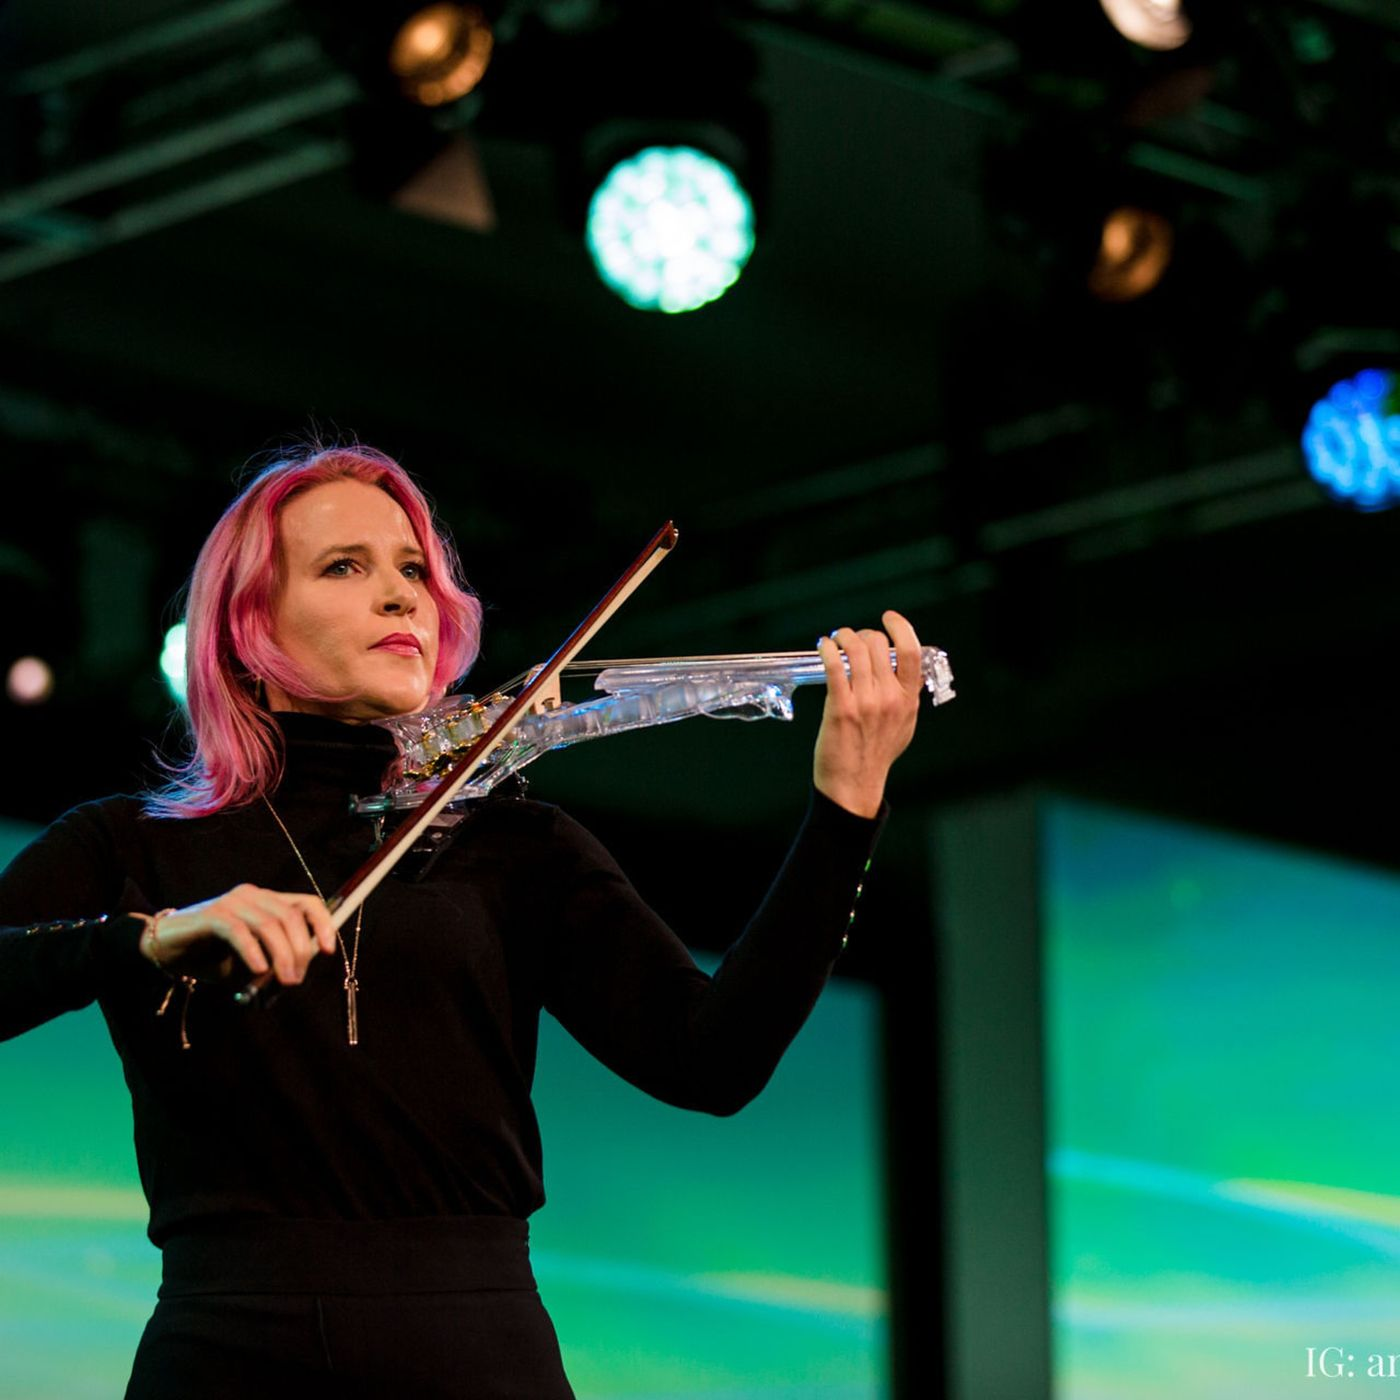 090- Finding One's Zone of Genius: Laura Escudés Pathway from Classical Musician to Live Show Designer and Producer